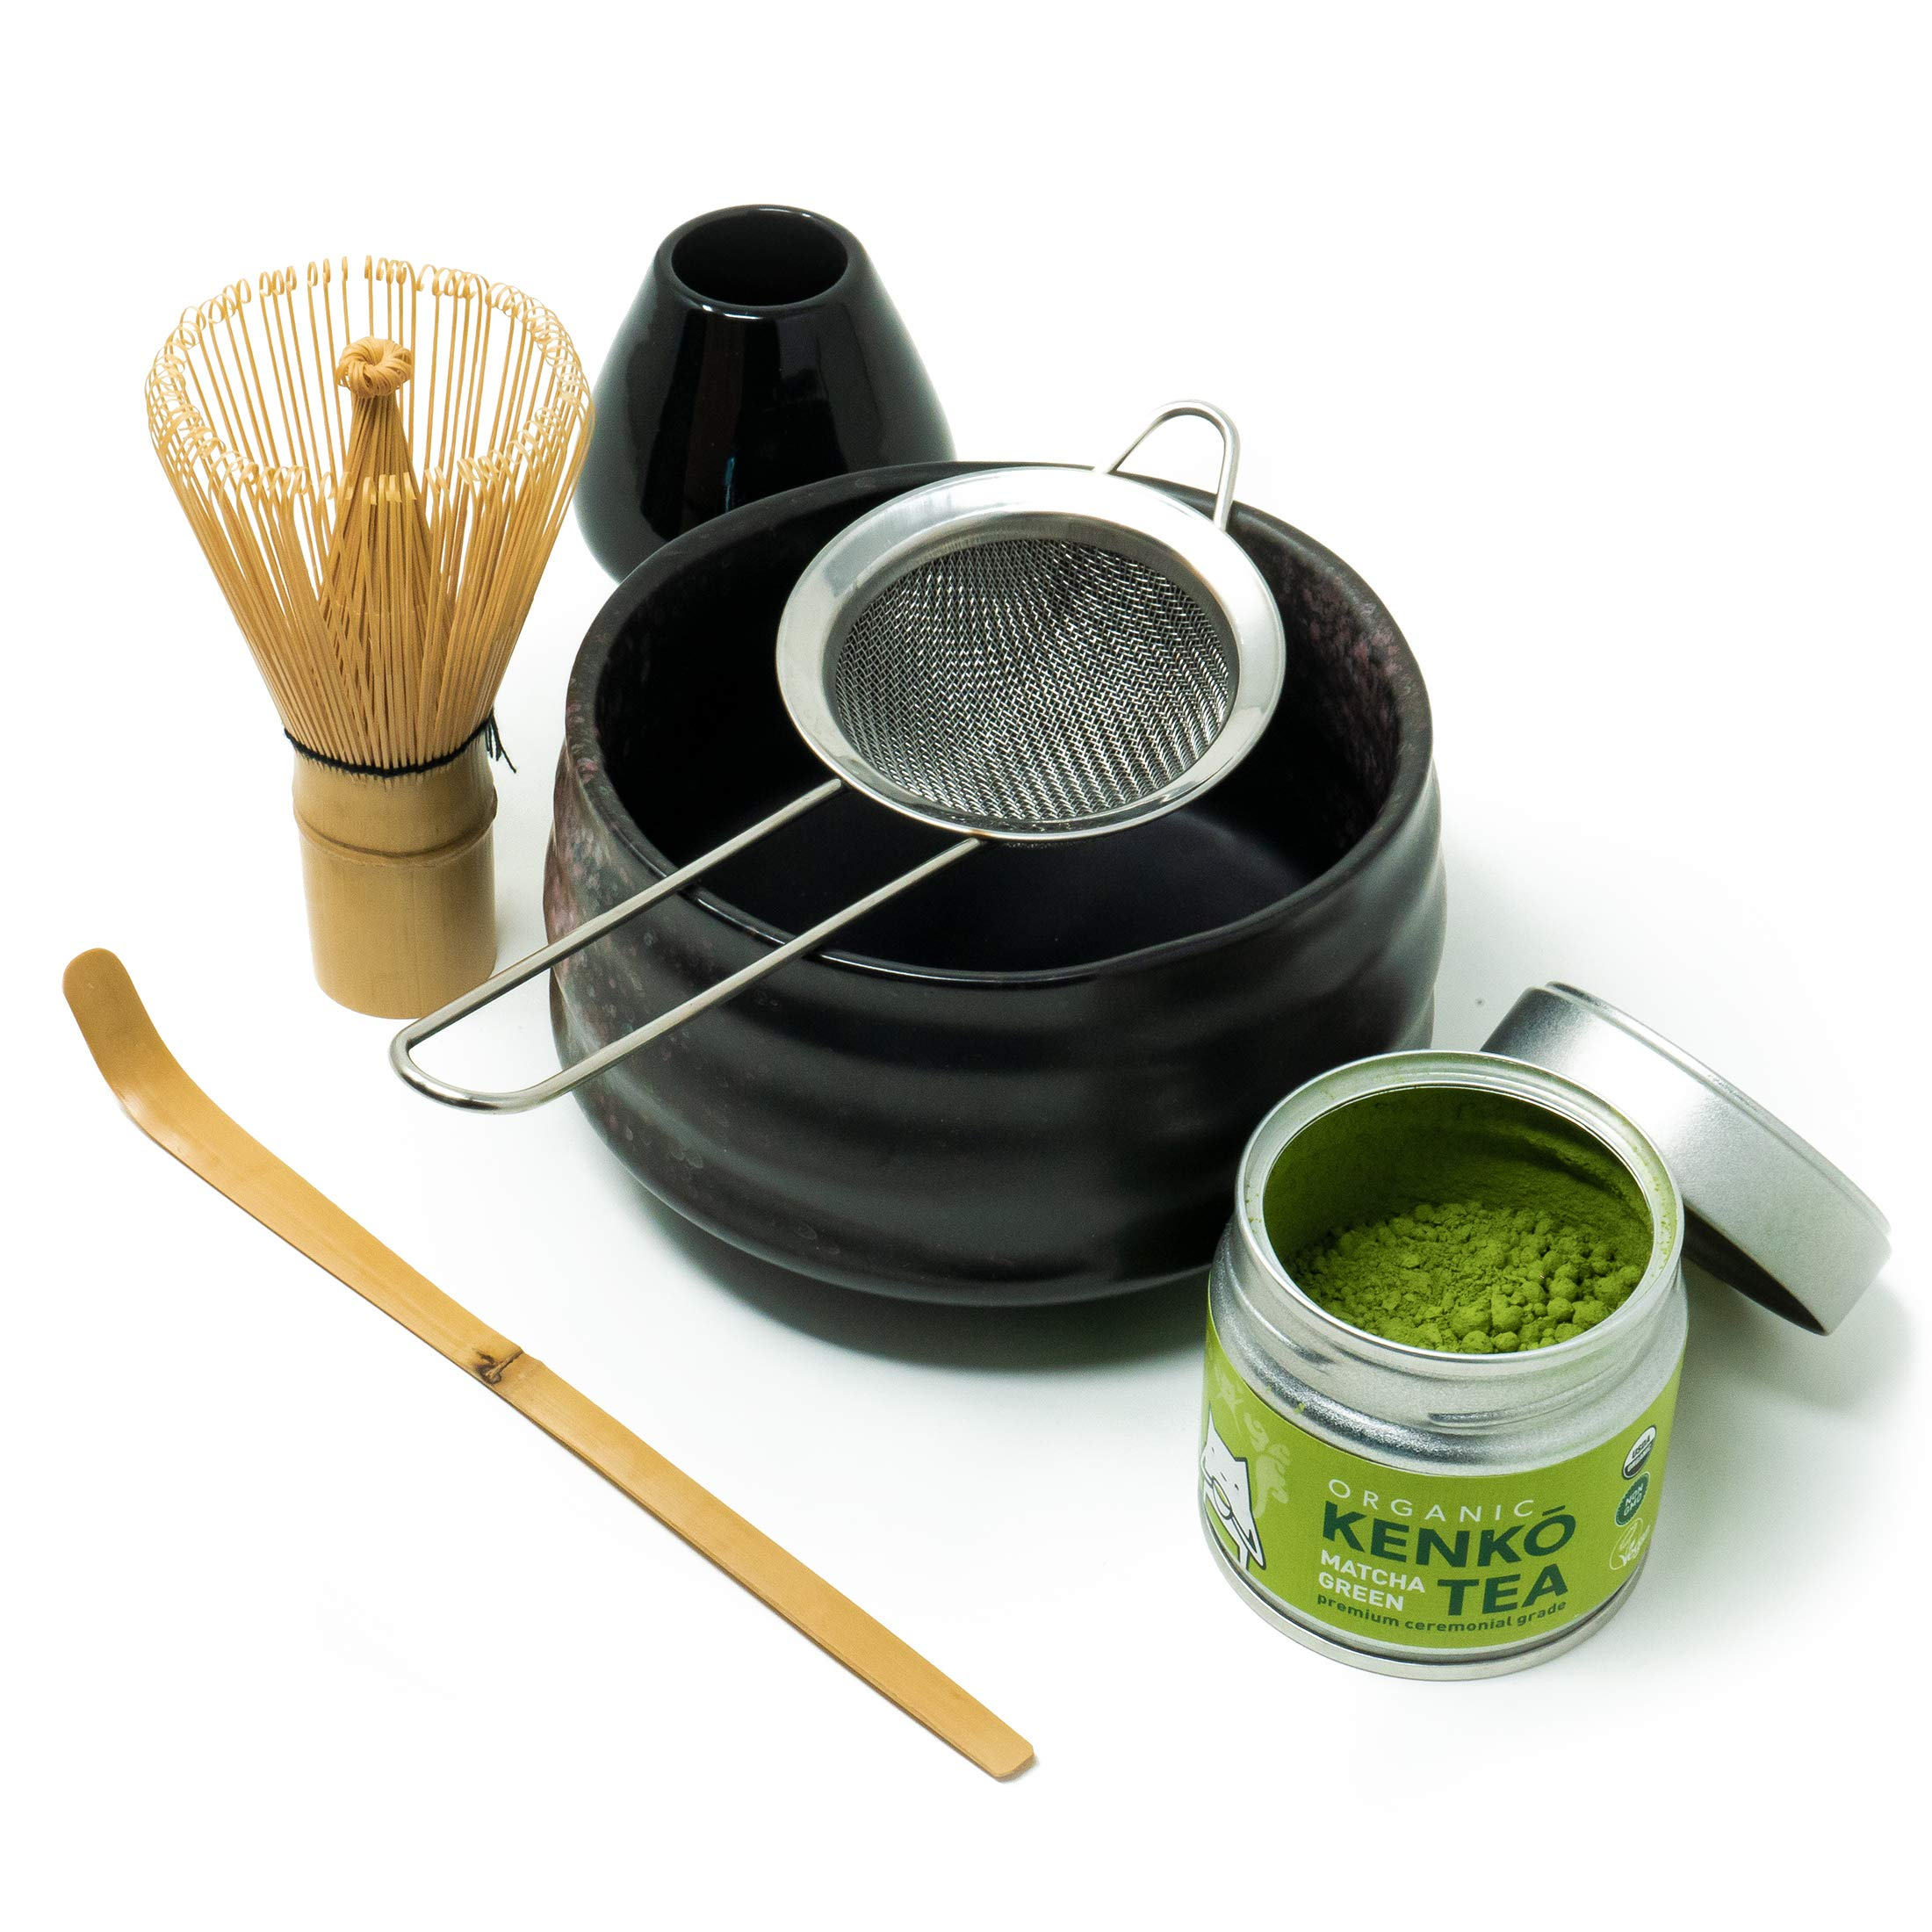 Kenko Tea Matcha Tea Ceremonial Set with Bowl, Bamboo Whisk, Bamboo Scoop. Whisk Stand and Sifter. Comes with 30g Organic Ceremonial Matcha